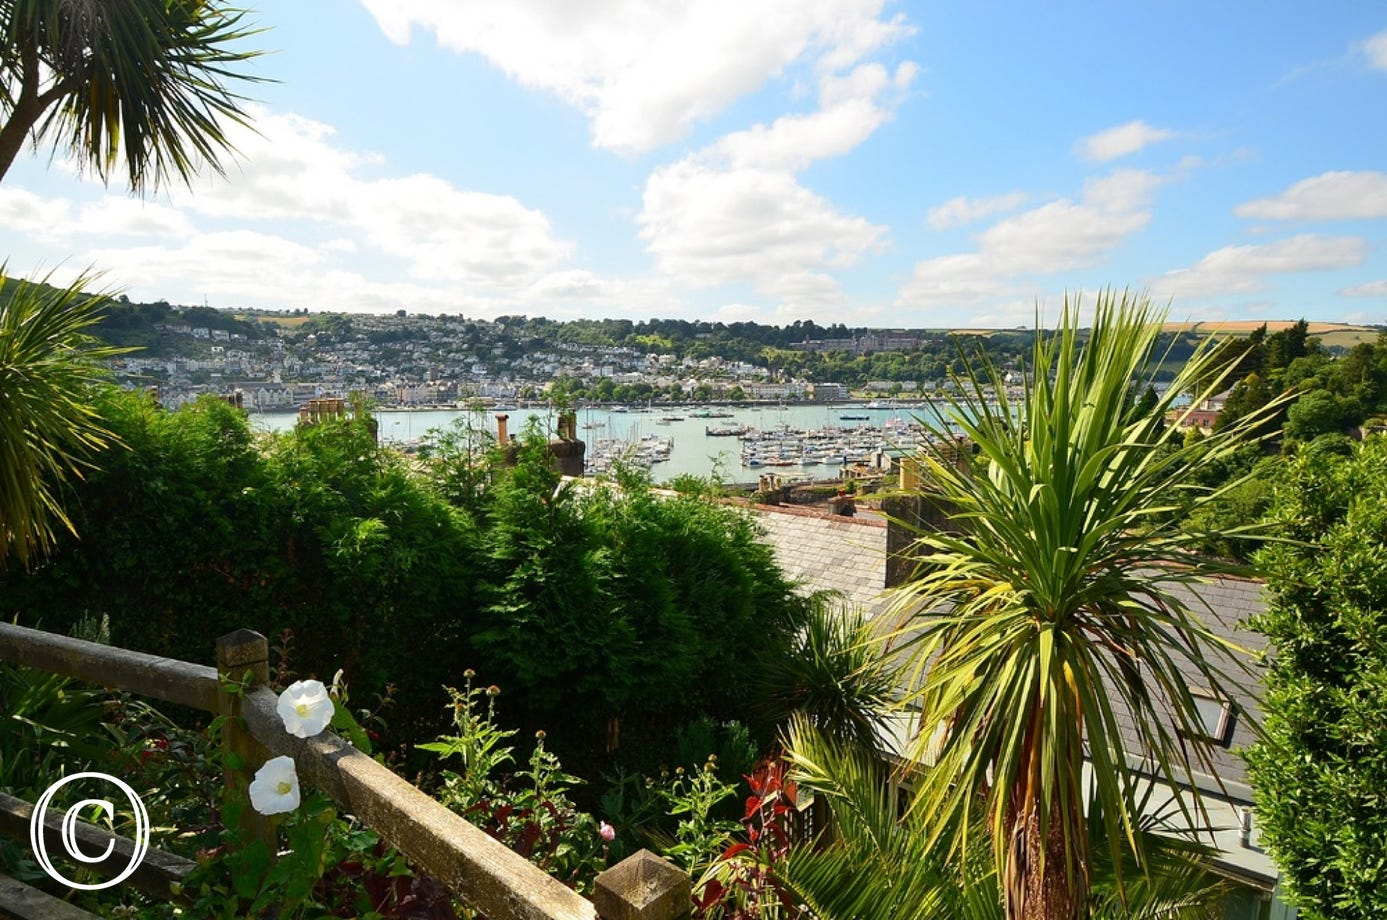 Views from Creekview in Kingswear, overlooking the River Dart